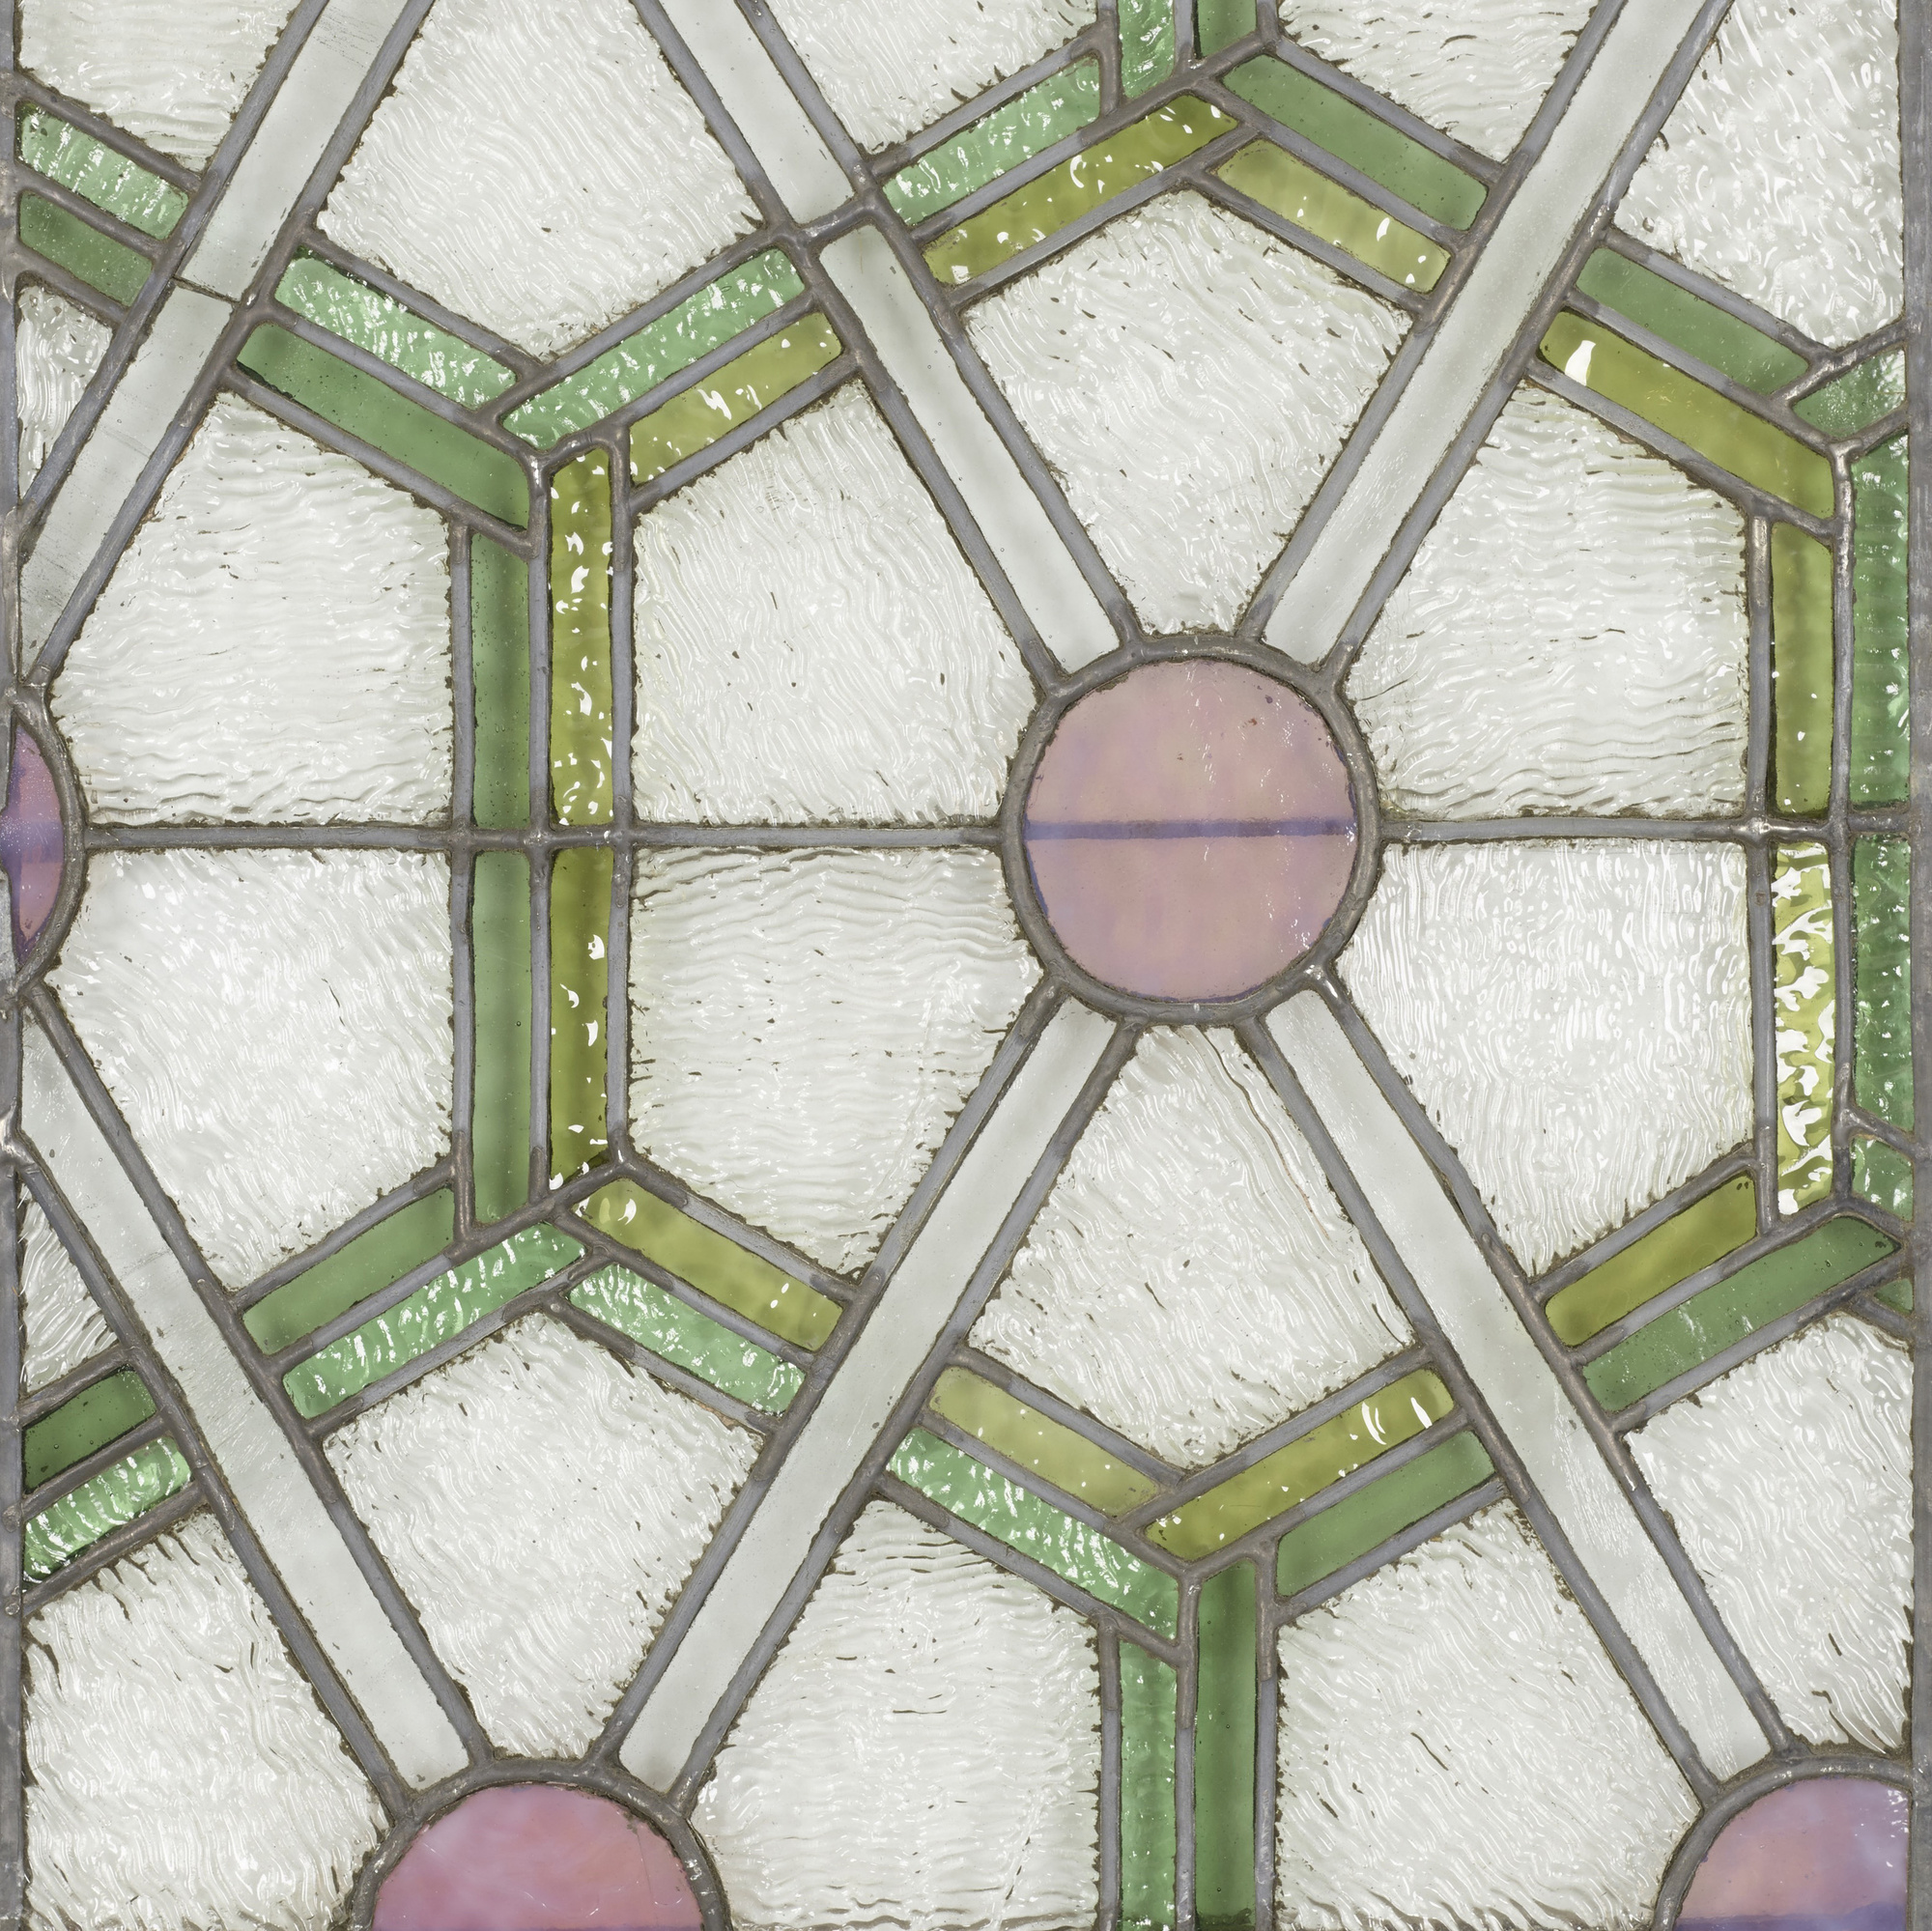 279: Dankmar Adler and Louis Sullivan / pair of windows from the Chicago Stock Exchange (2 of 2)